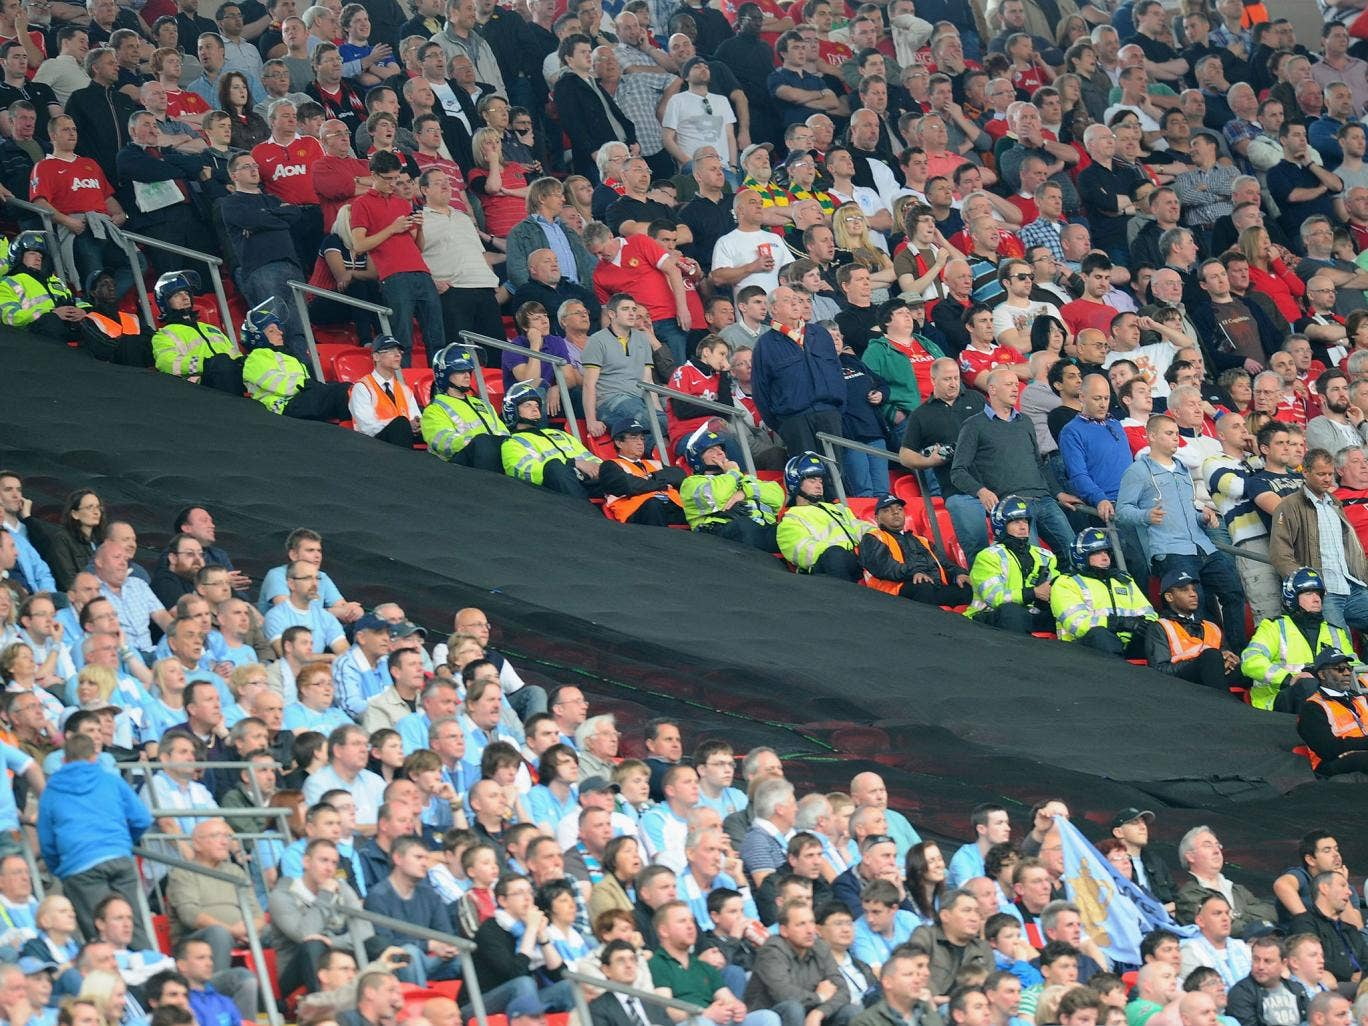 The segregated fans watch the game during the FA Cup sponsored by E.ON semi final match between Manchester City and Manchester United at Wembley Stadium on April 16, 2011